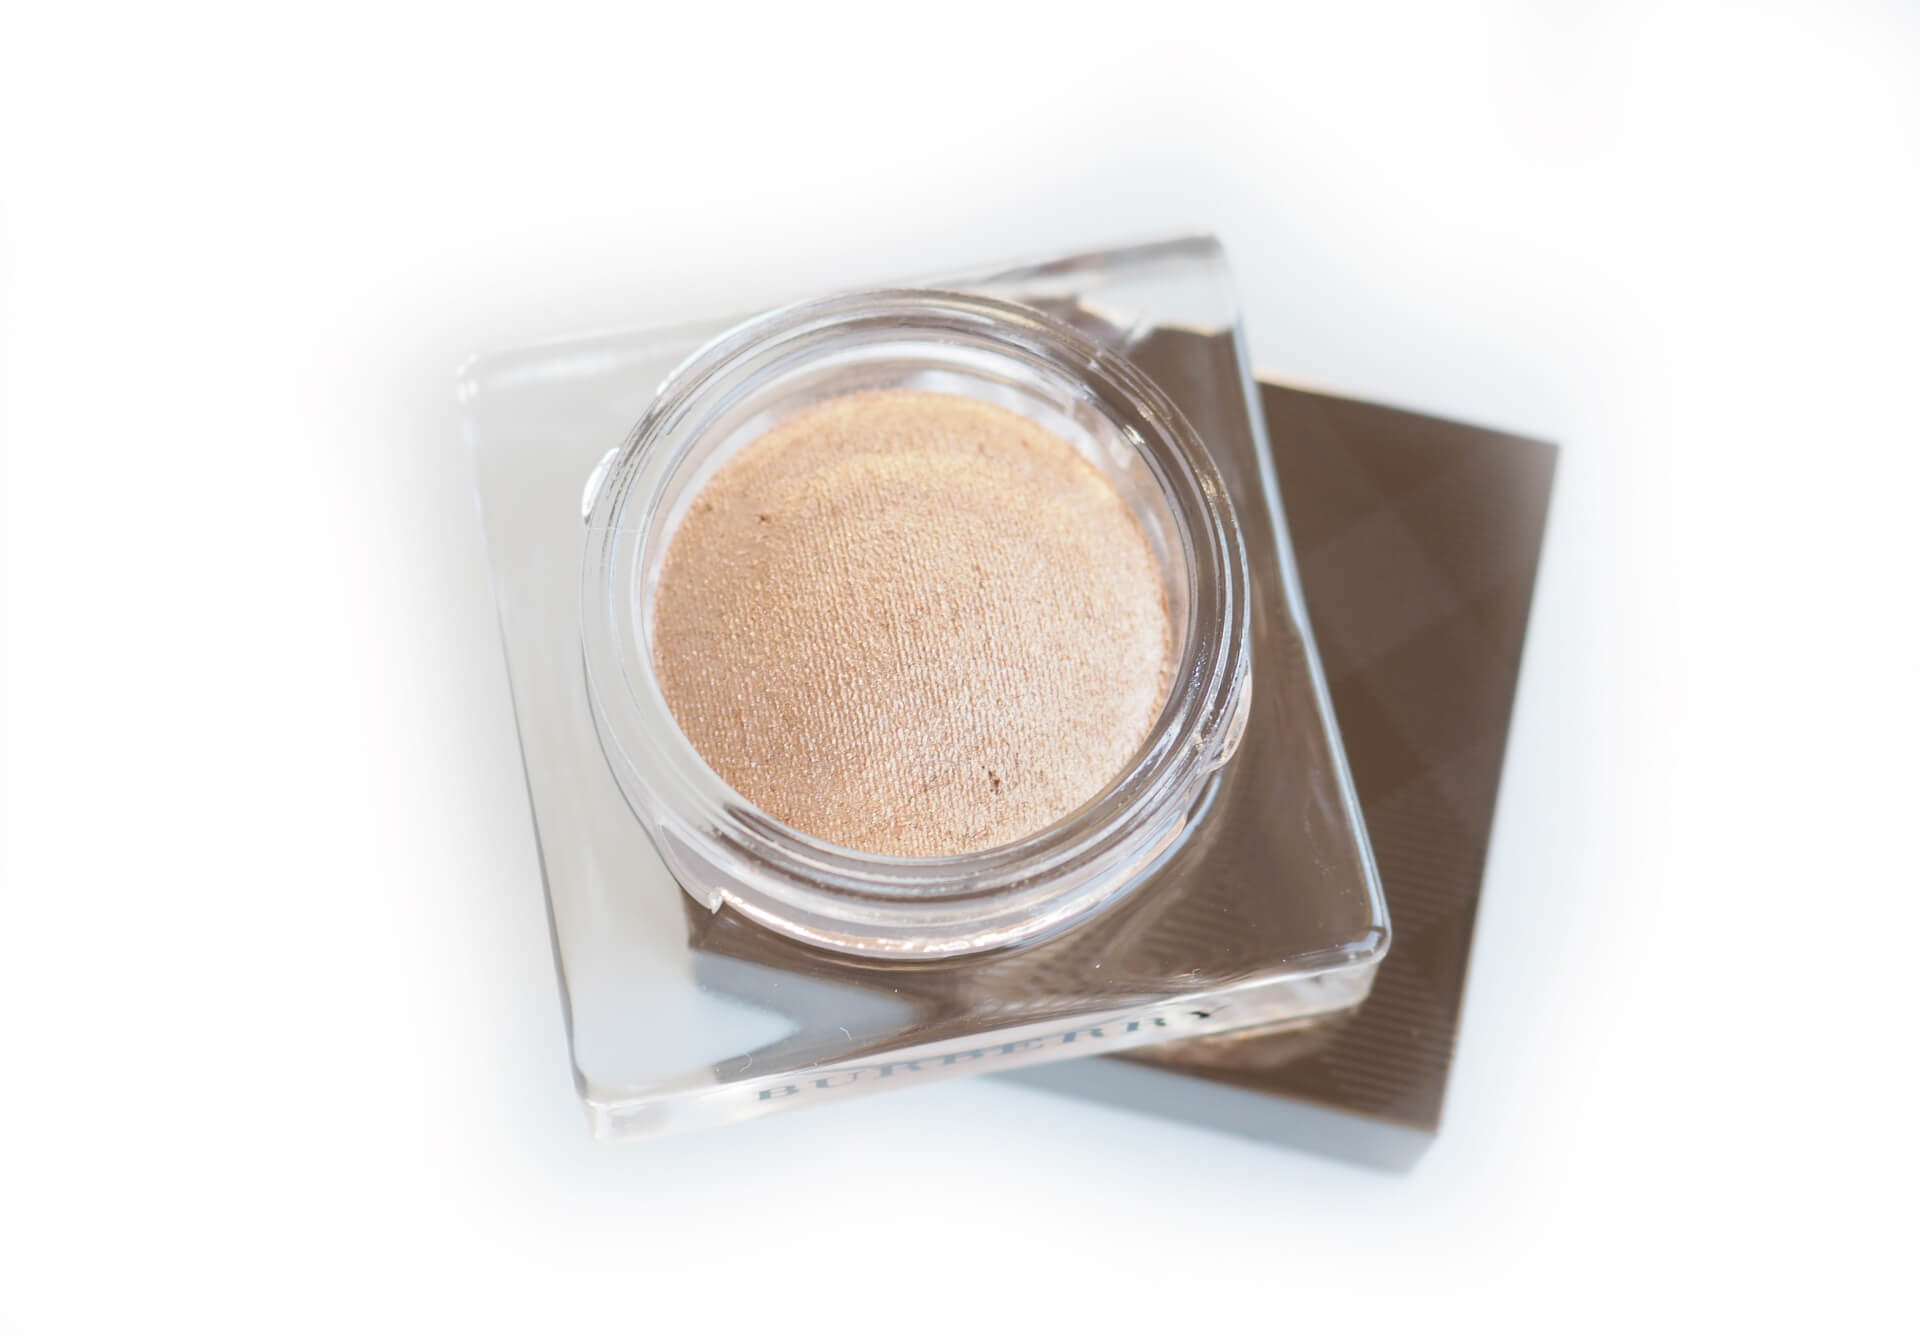 Sheer Gold Eye Colour Cream